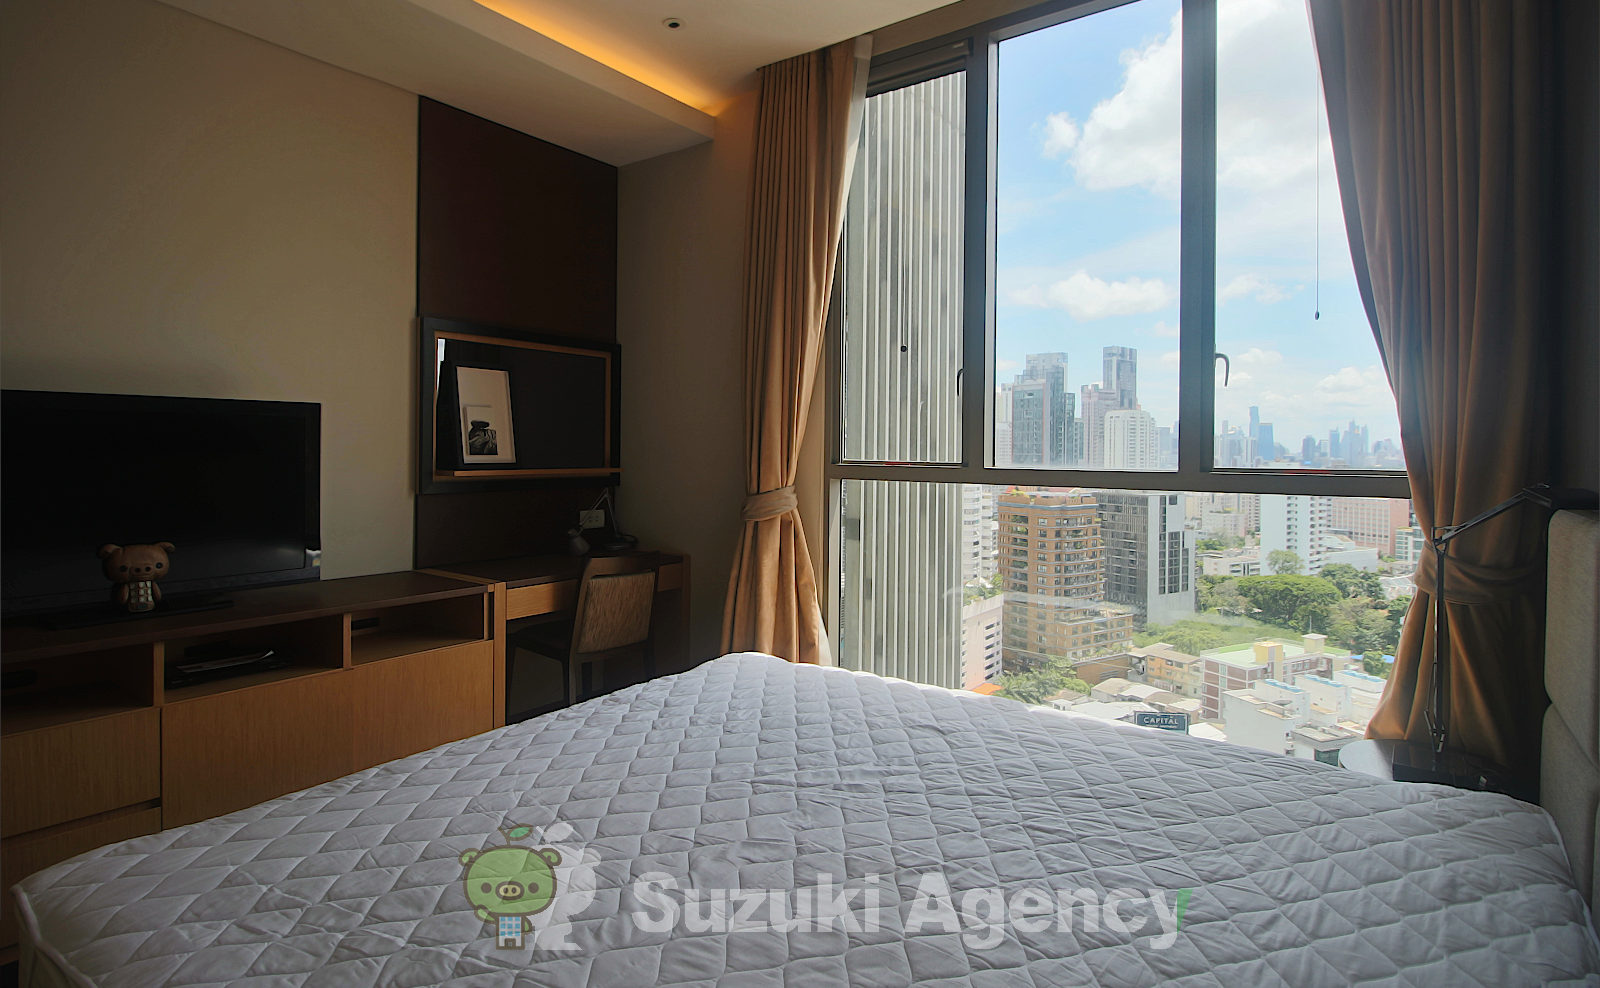 AEQUA (Owner No.88595):1Bed Room Photos No.7